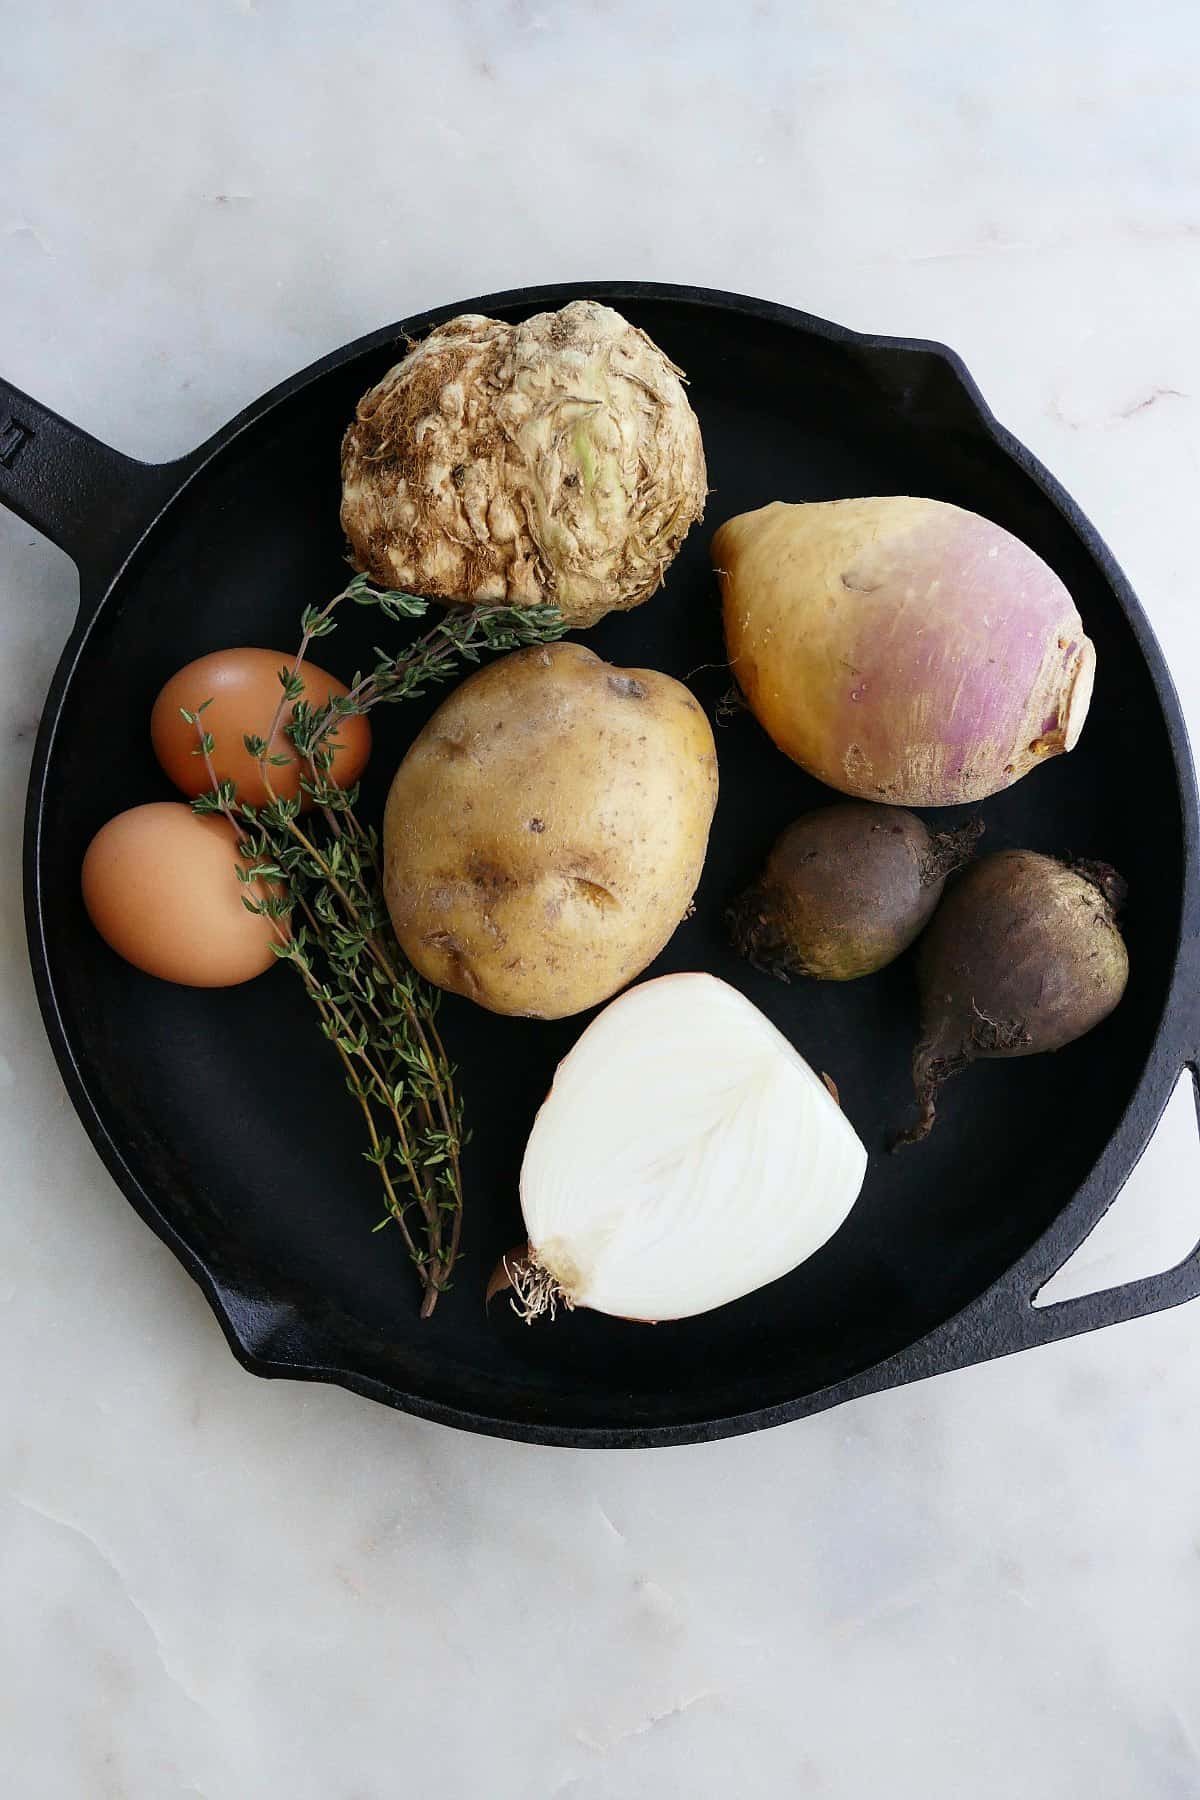 celeriac, potato, rutabaga, onion, beets, thyme, and eggs in a skillet